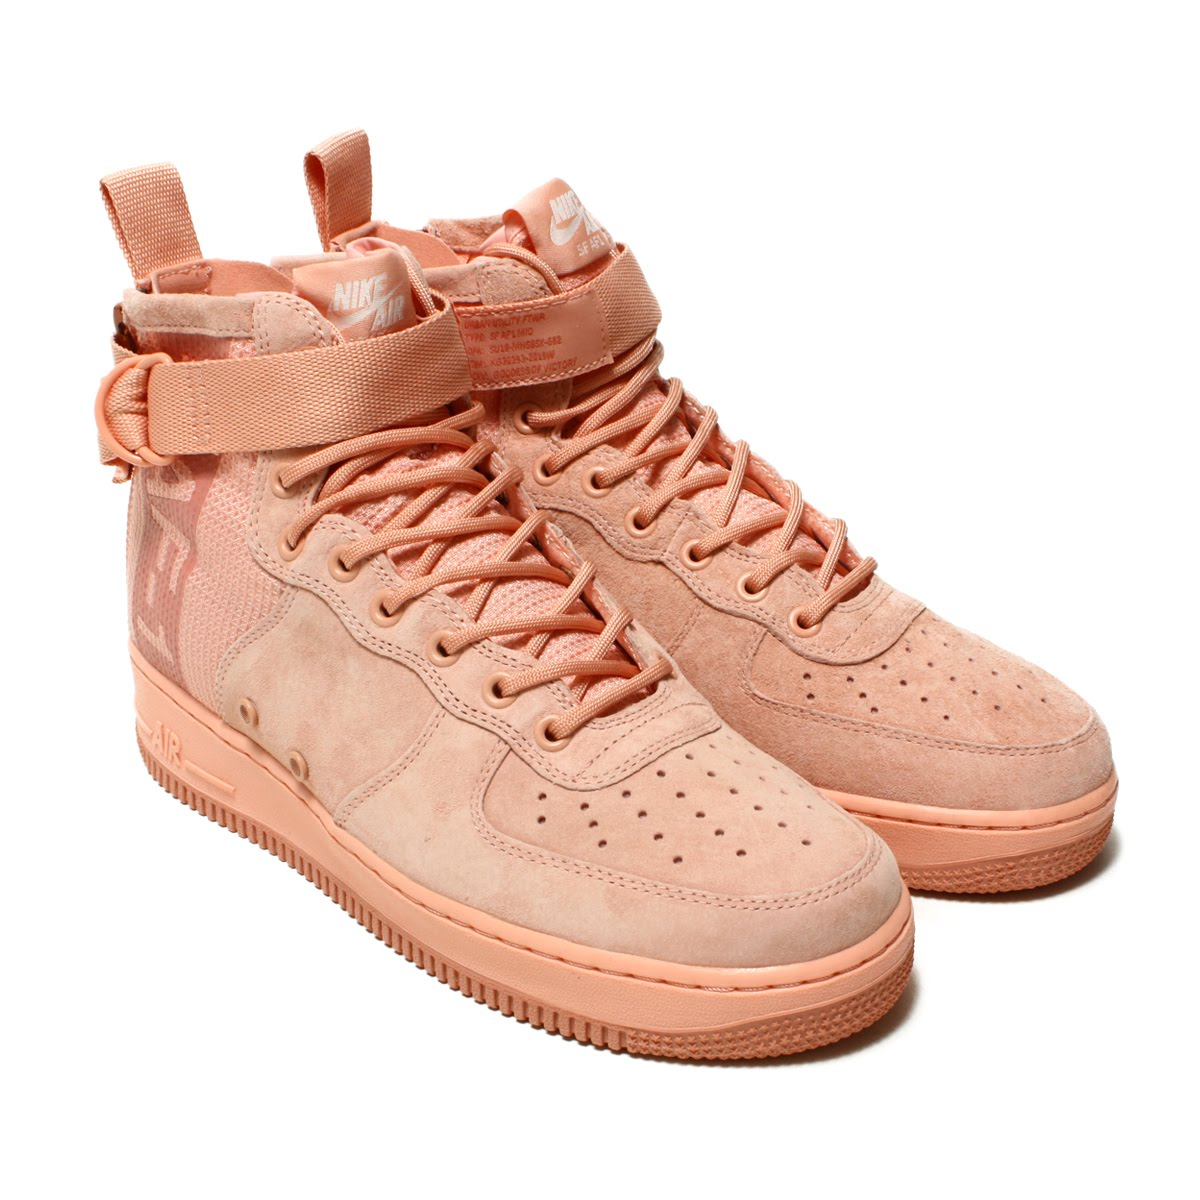 ★SALE ★ NIKE SF AF1 MID SUEDE (Nike SF AF 1 mid suede) CORAL STARDUST/RED  STARDUST 18SP-I